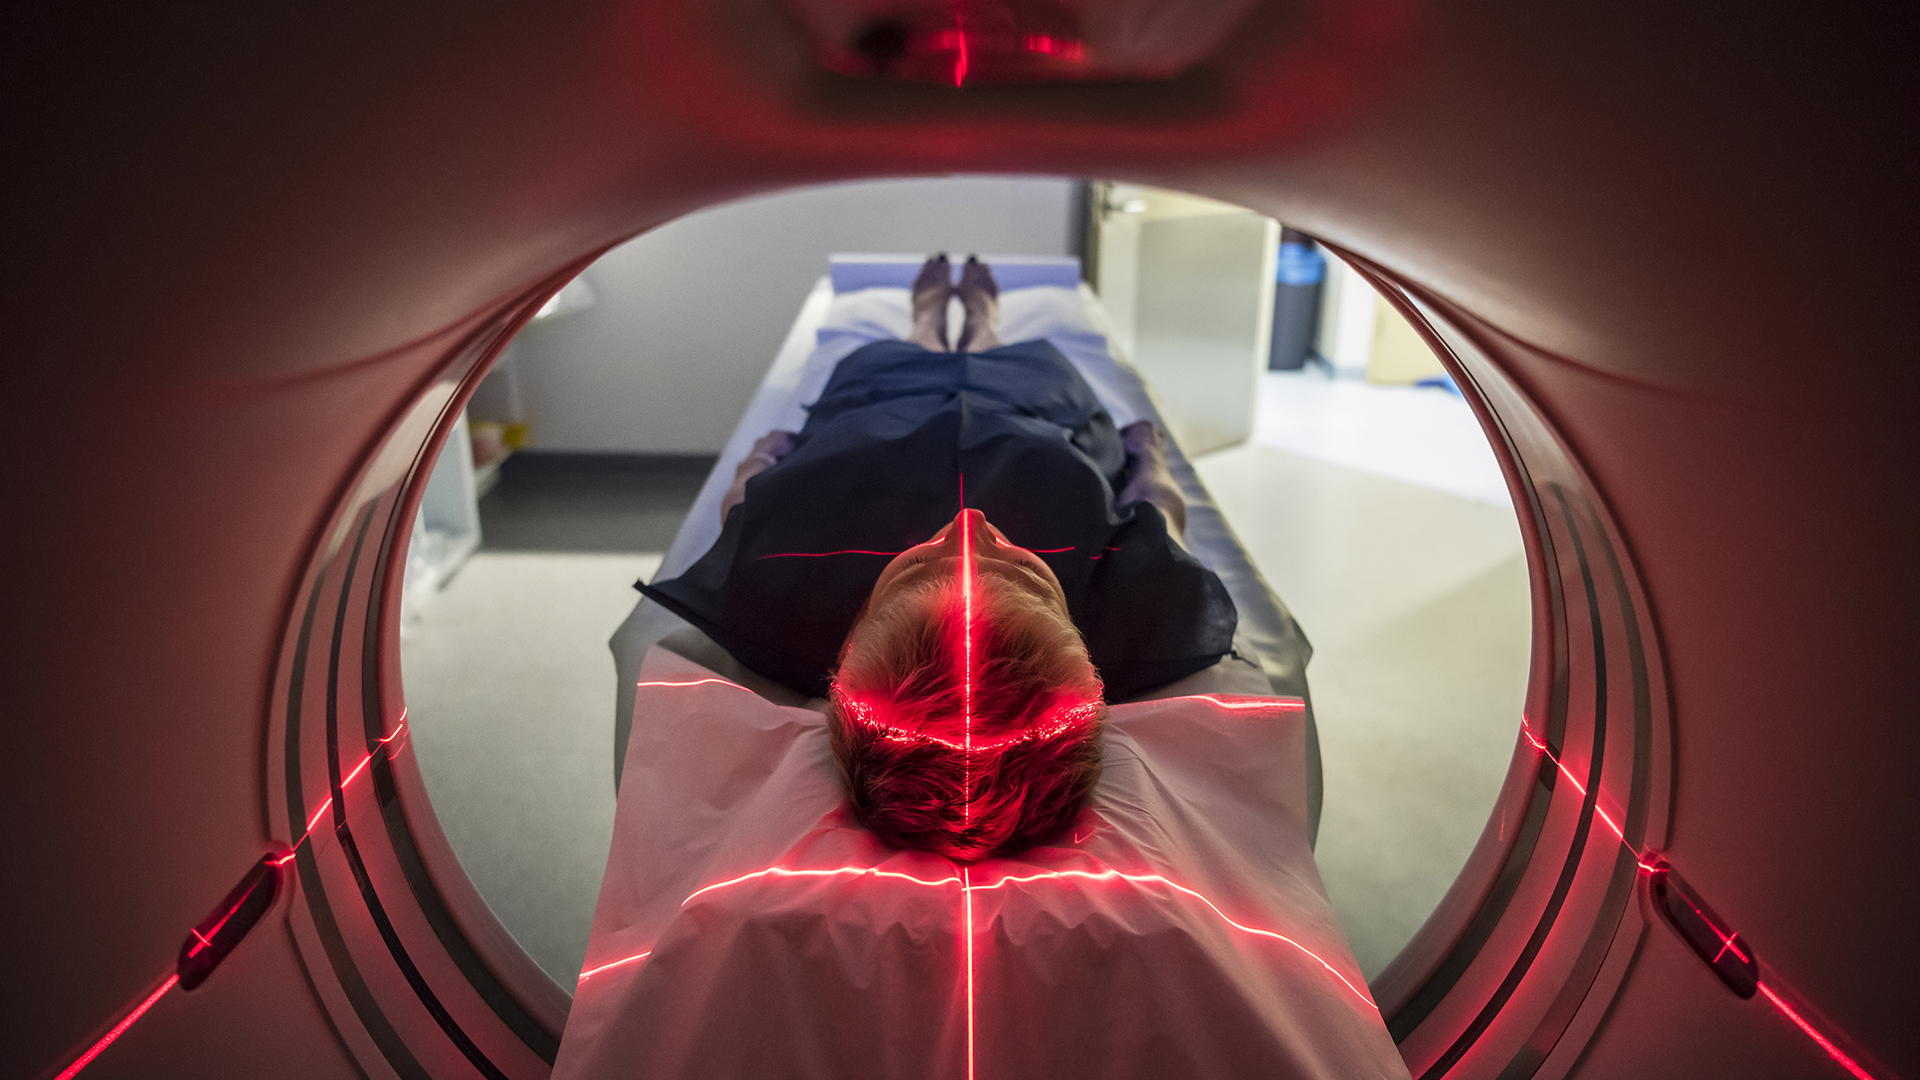 Person undergoing a CAT scan in hospital